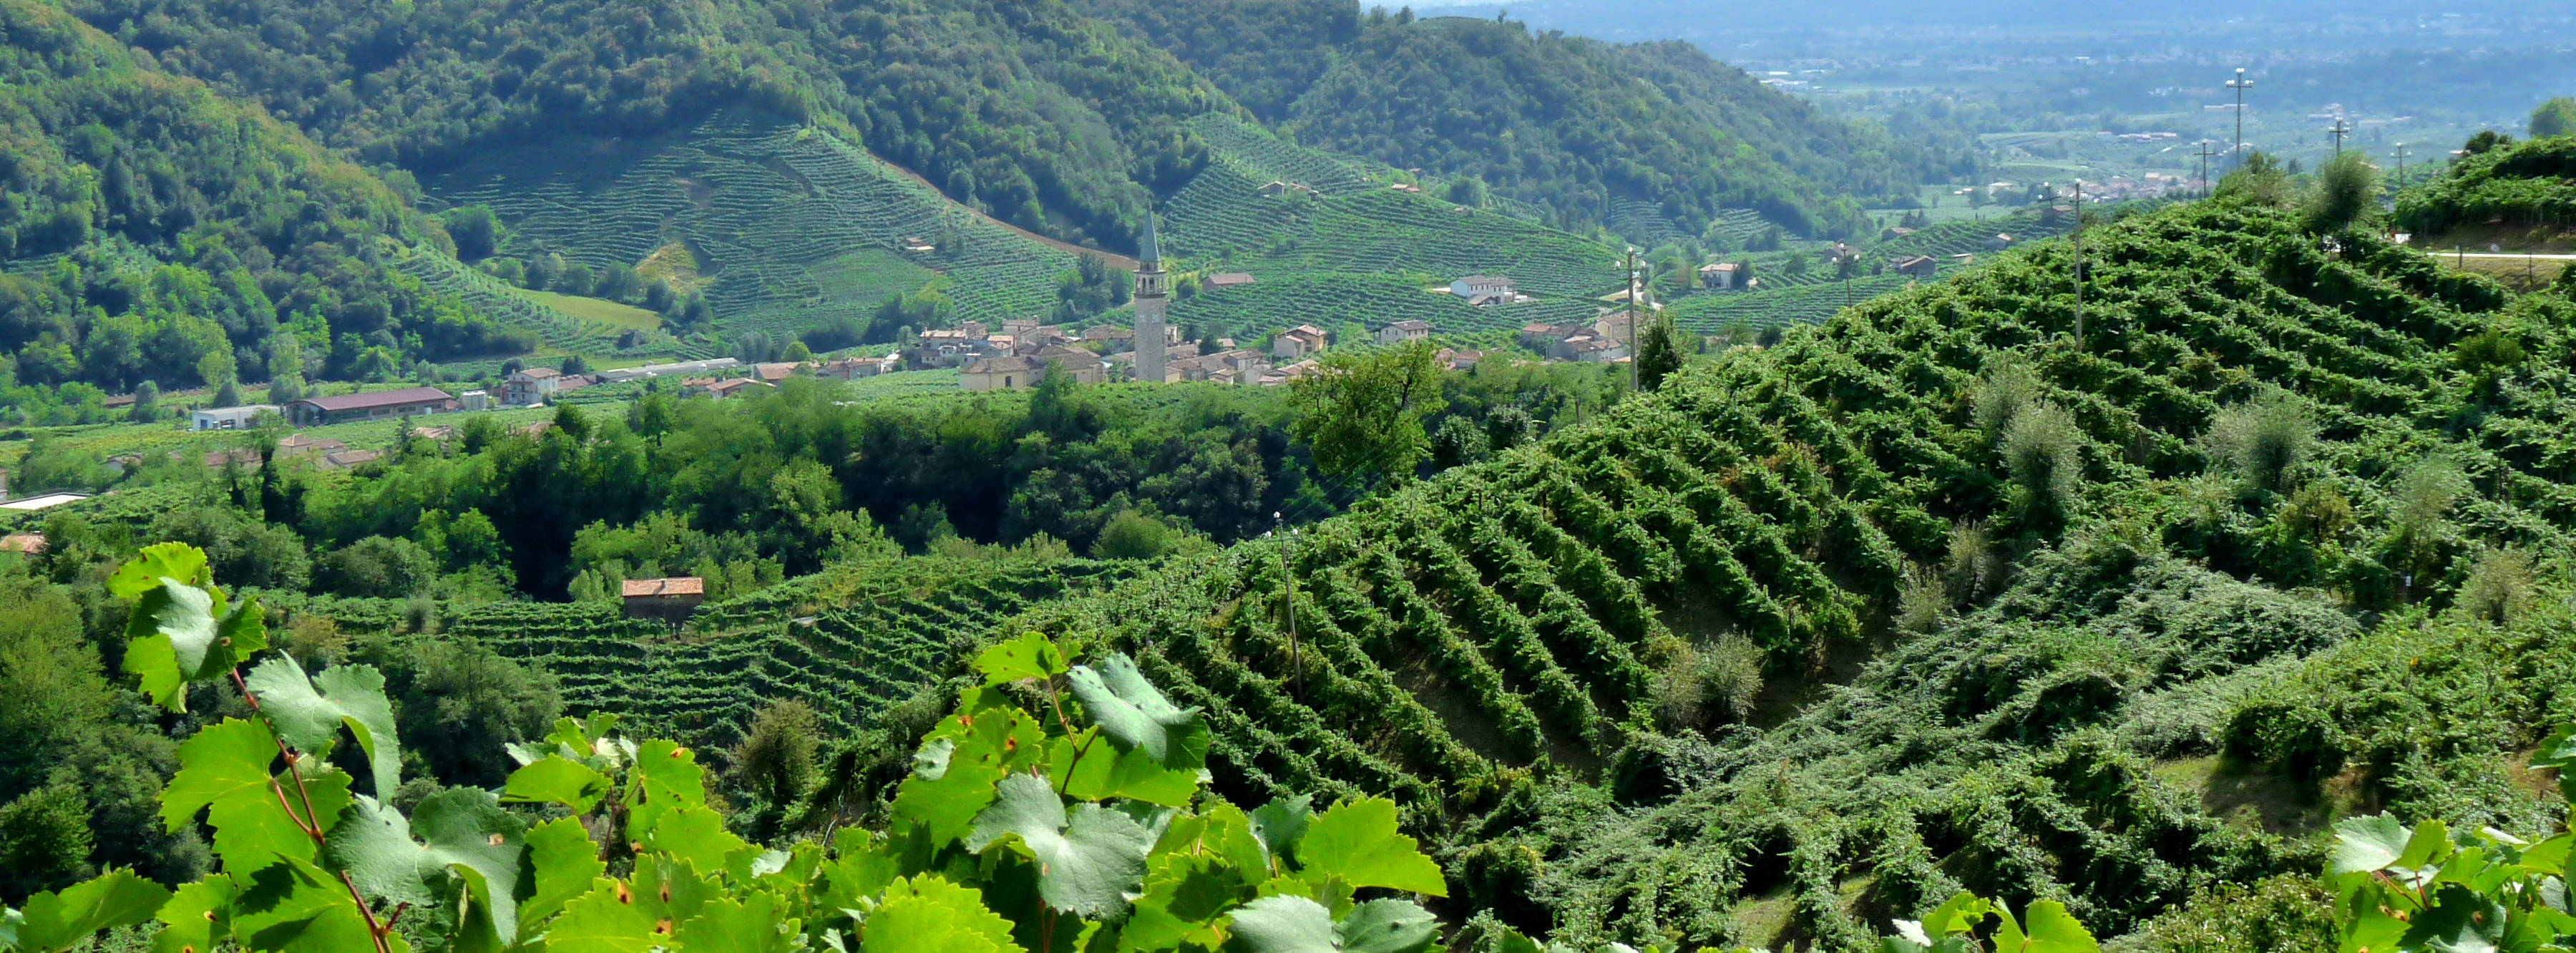 Prosecco region, northern Italy